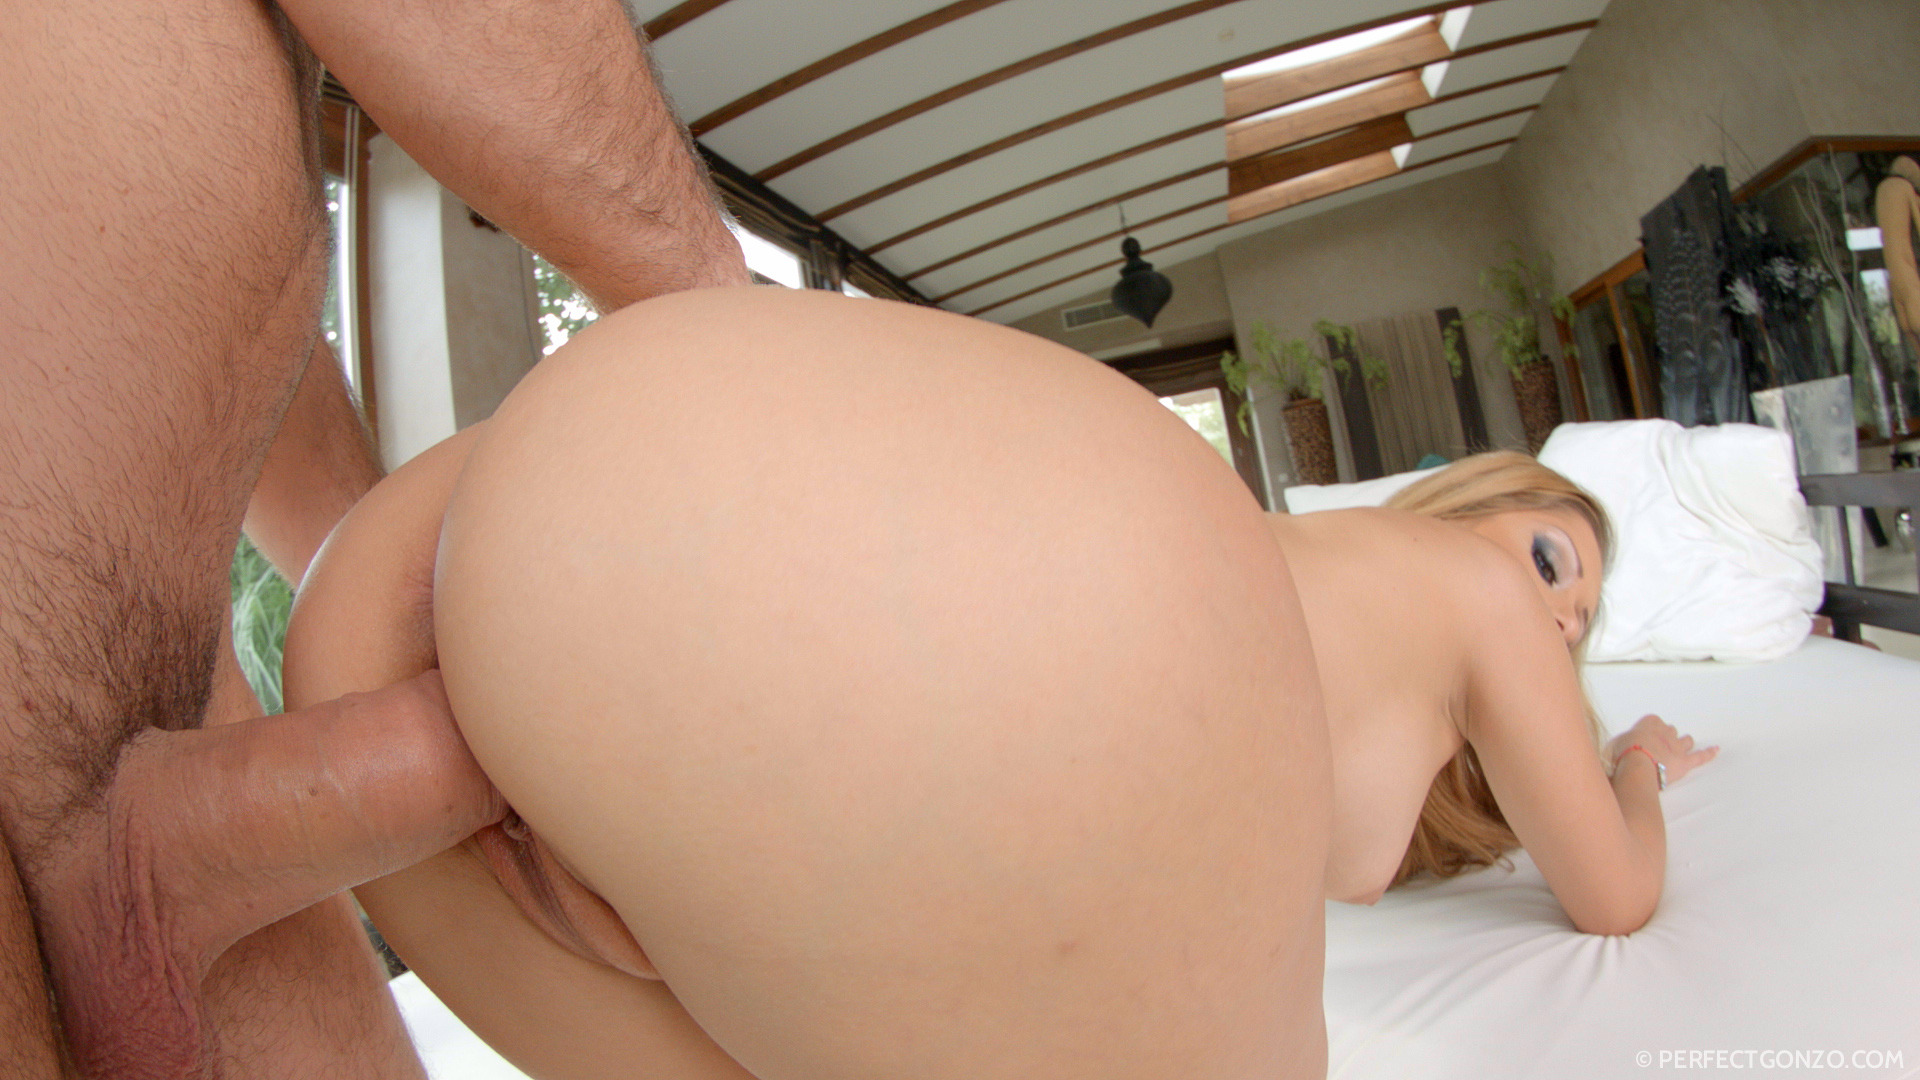 All internal melanie gold gets big internal creampie 4